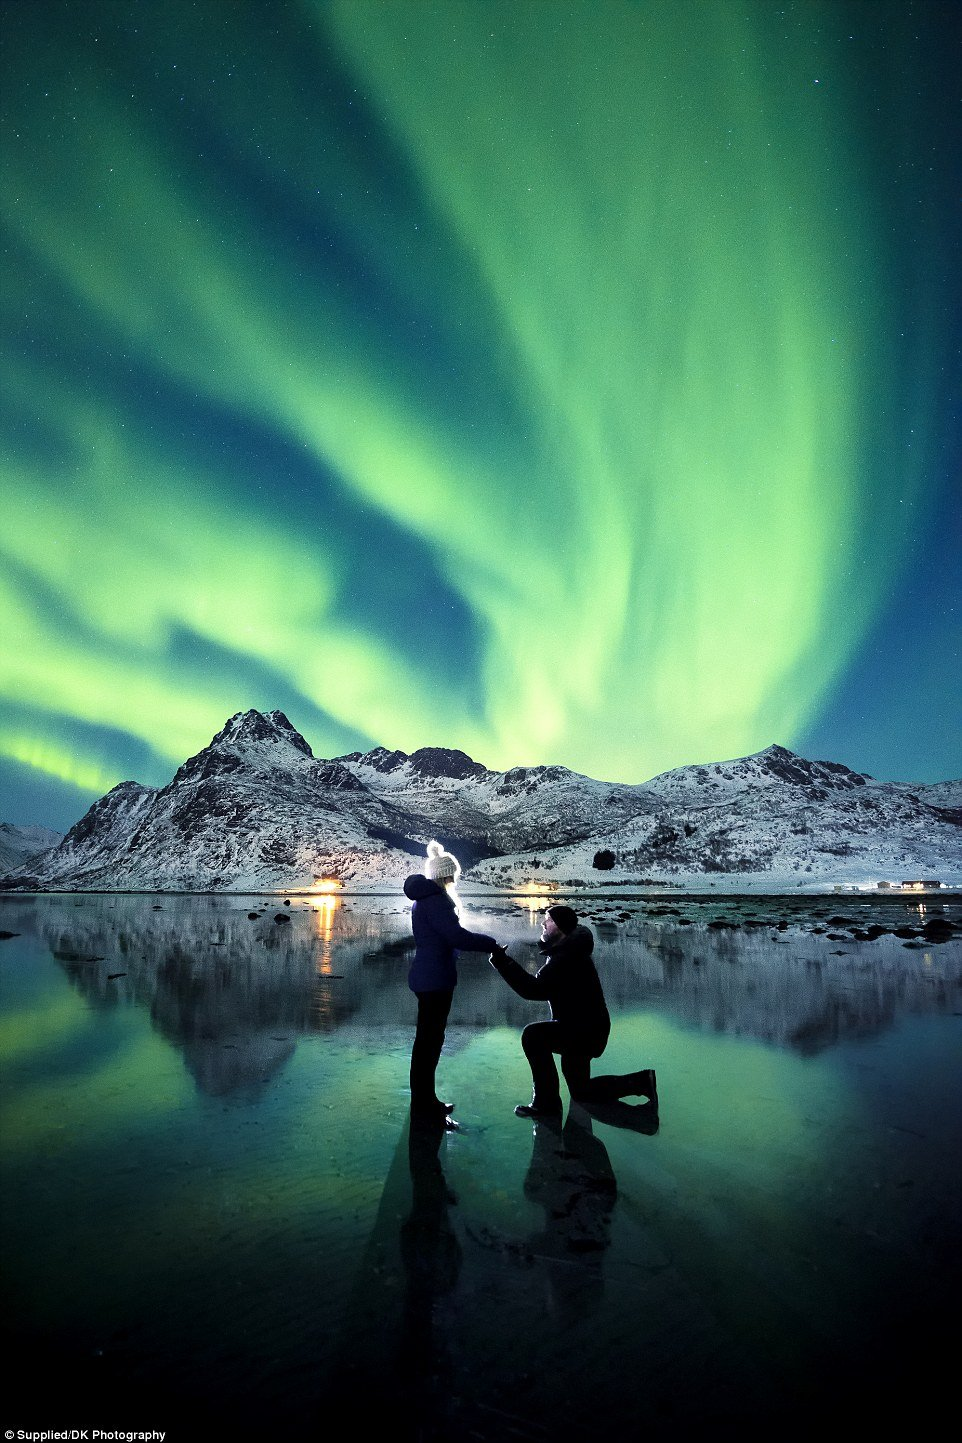 3e0eca2f00000578 4291770 image a 87 1488934377714.jpg?resize=300,169 - Couple Take Breathtaking Proposal Photo With The Northern Lights